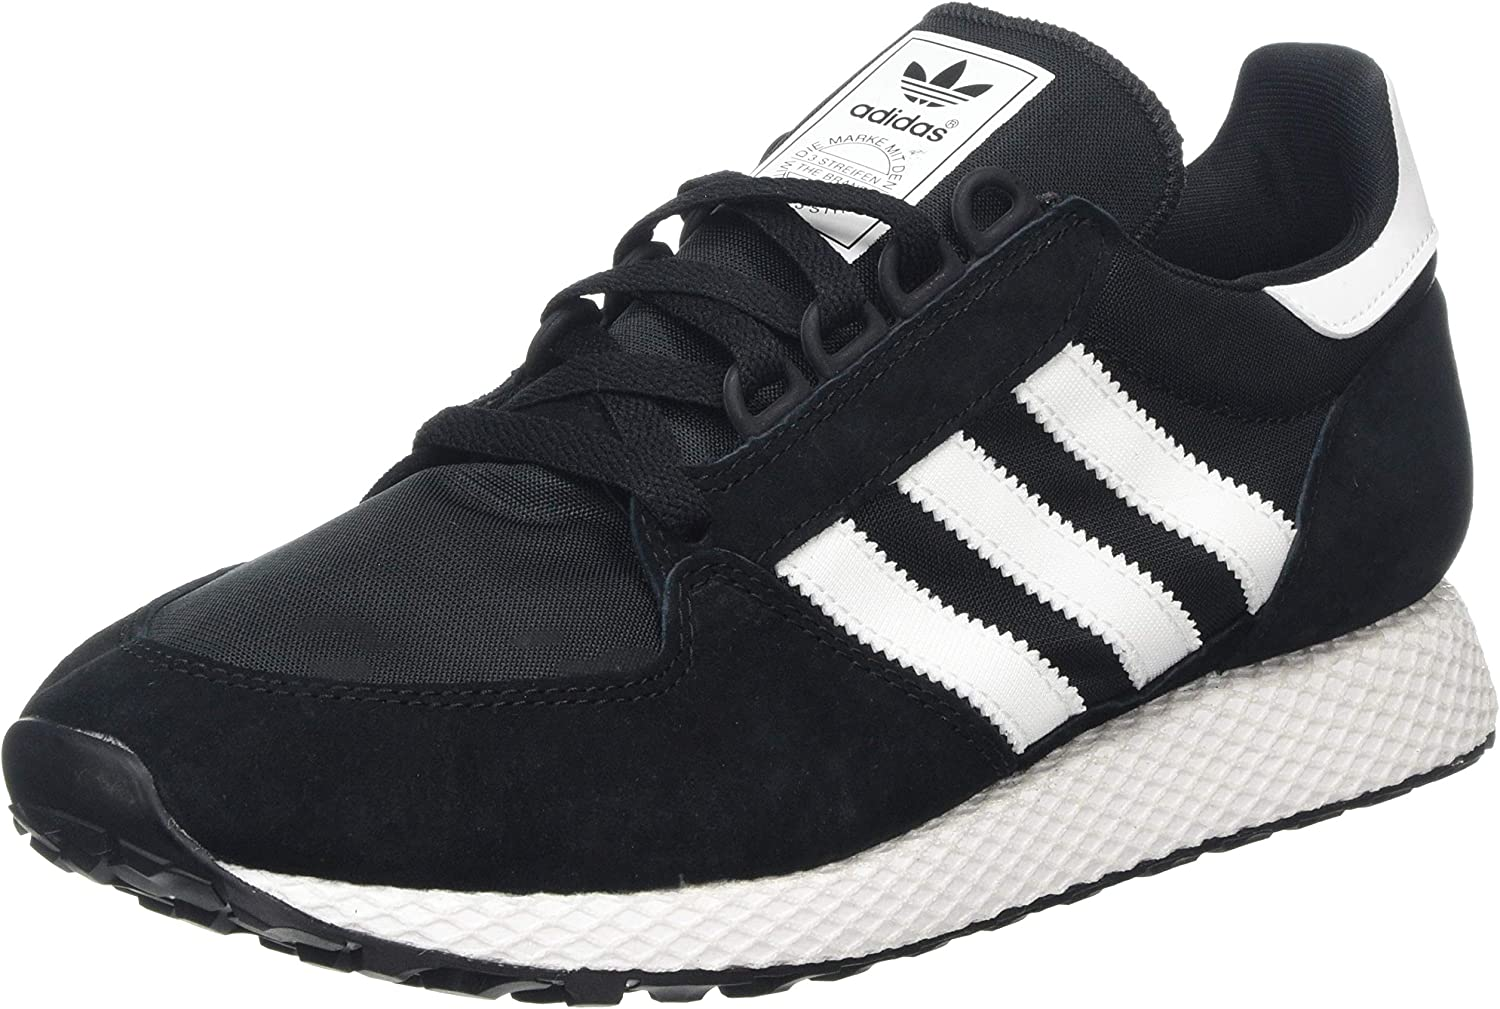 Adidas Forest Grove Color: Black Size: 9.5US: Amazon